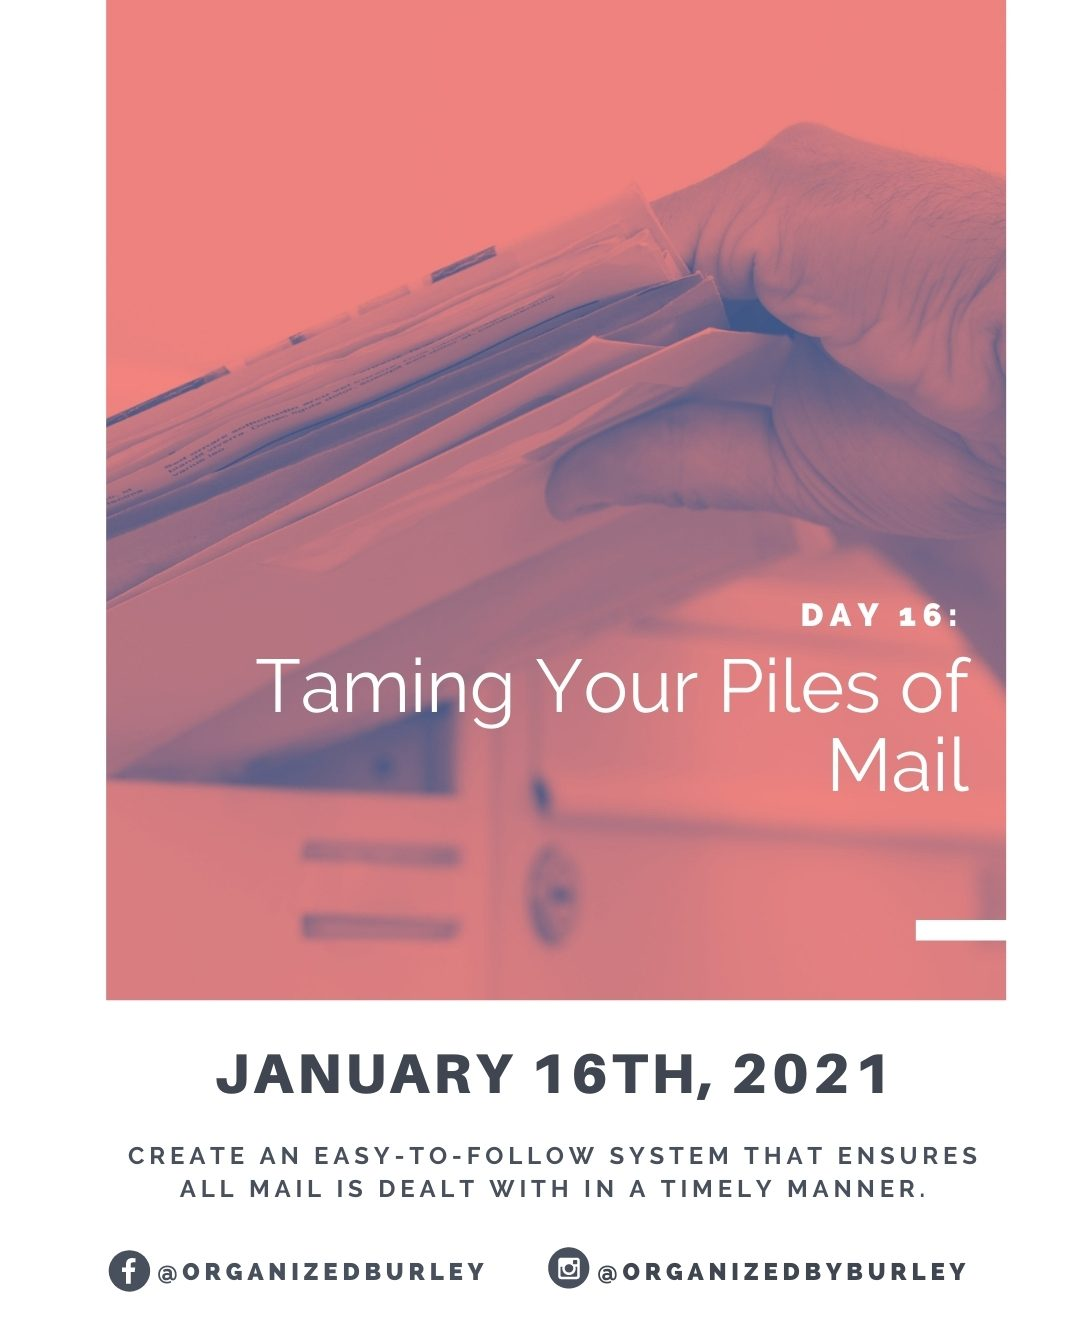 Organize your paper mail